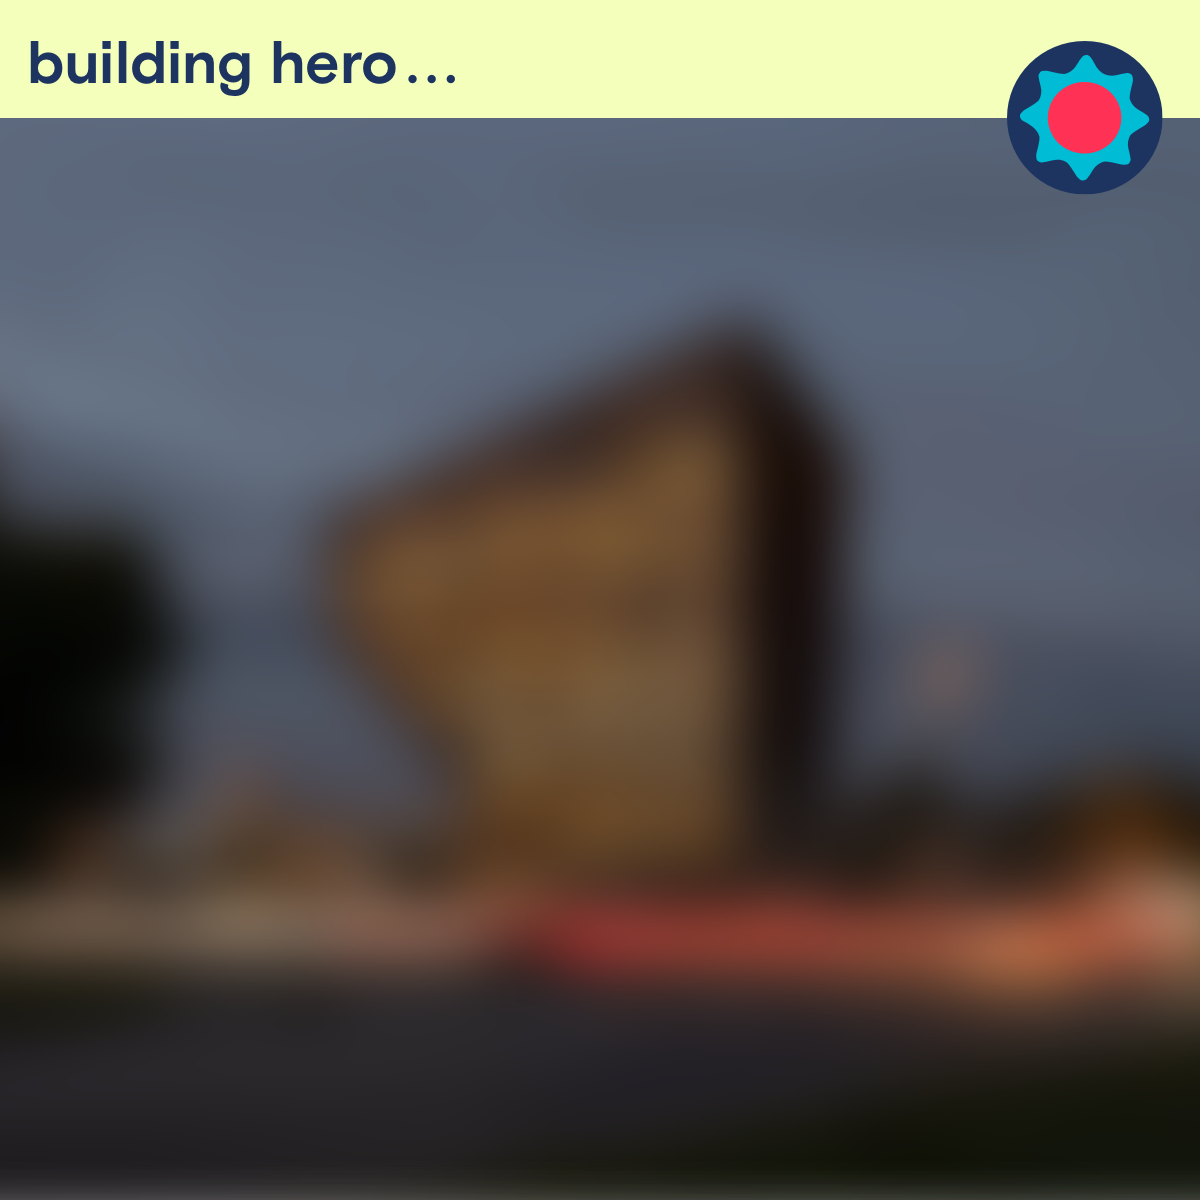 Building hero: click to reveal